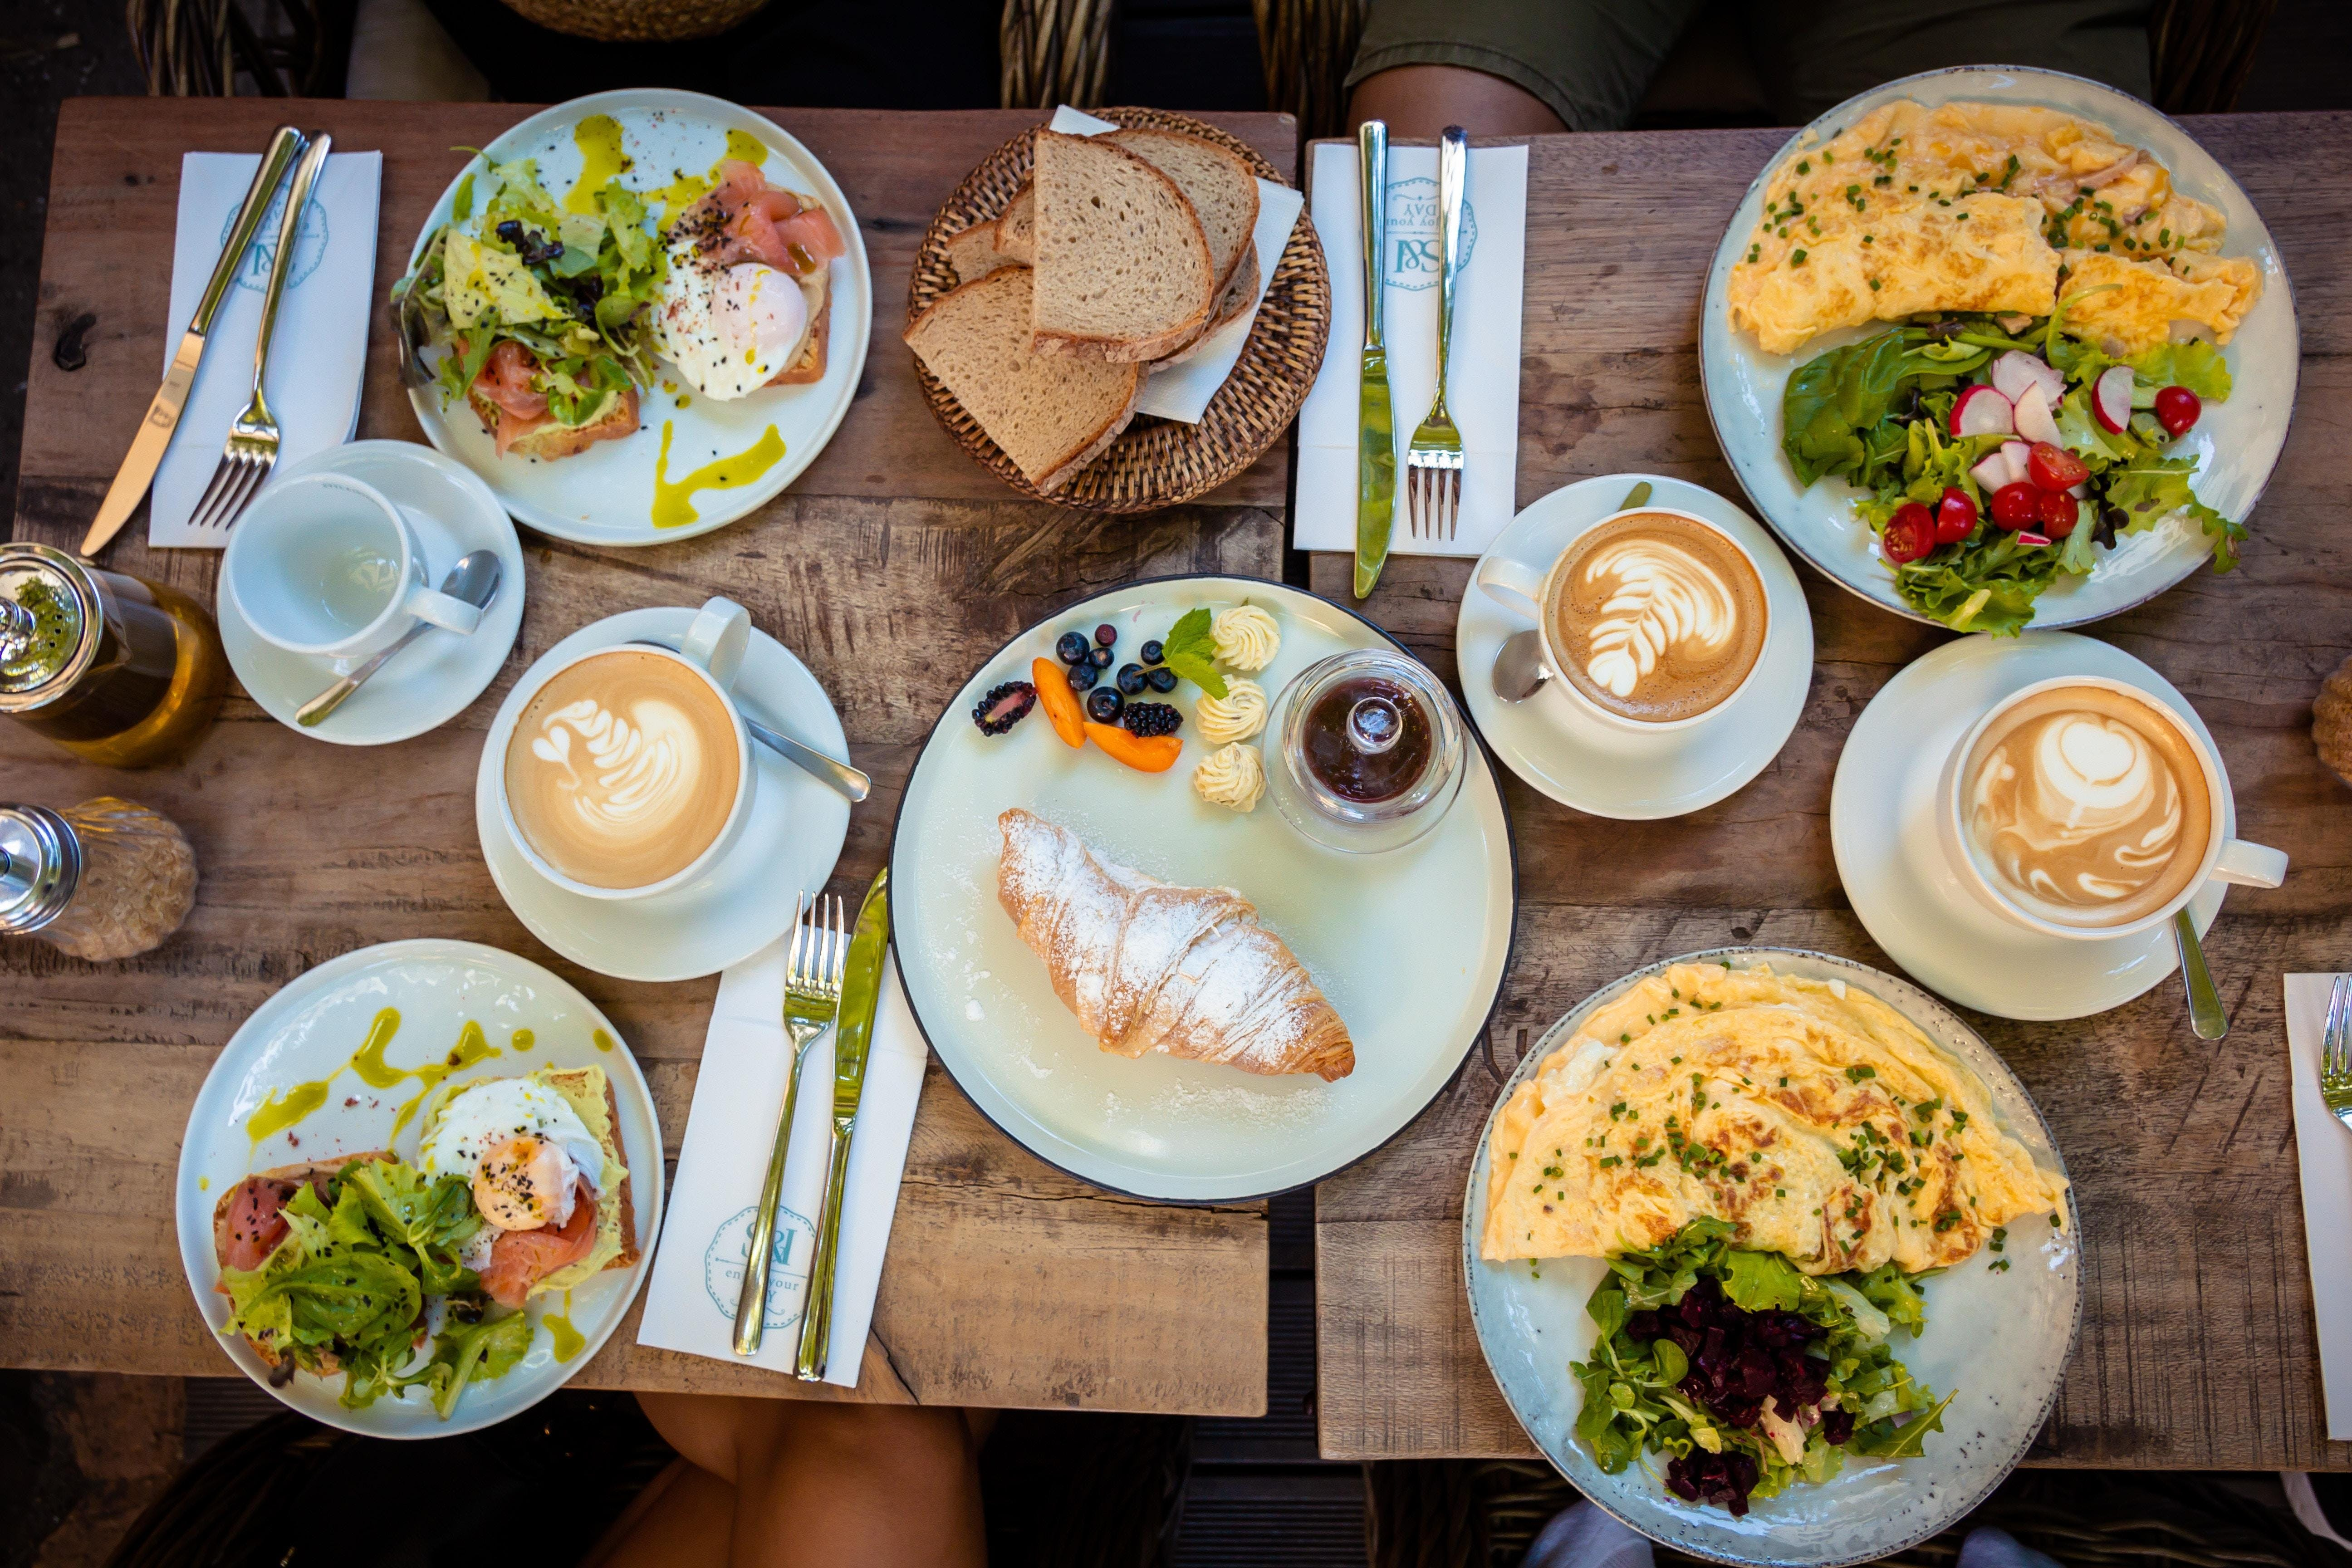 February Round Table (Breakfast)